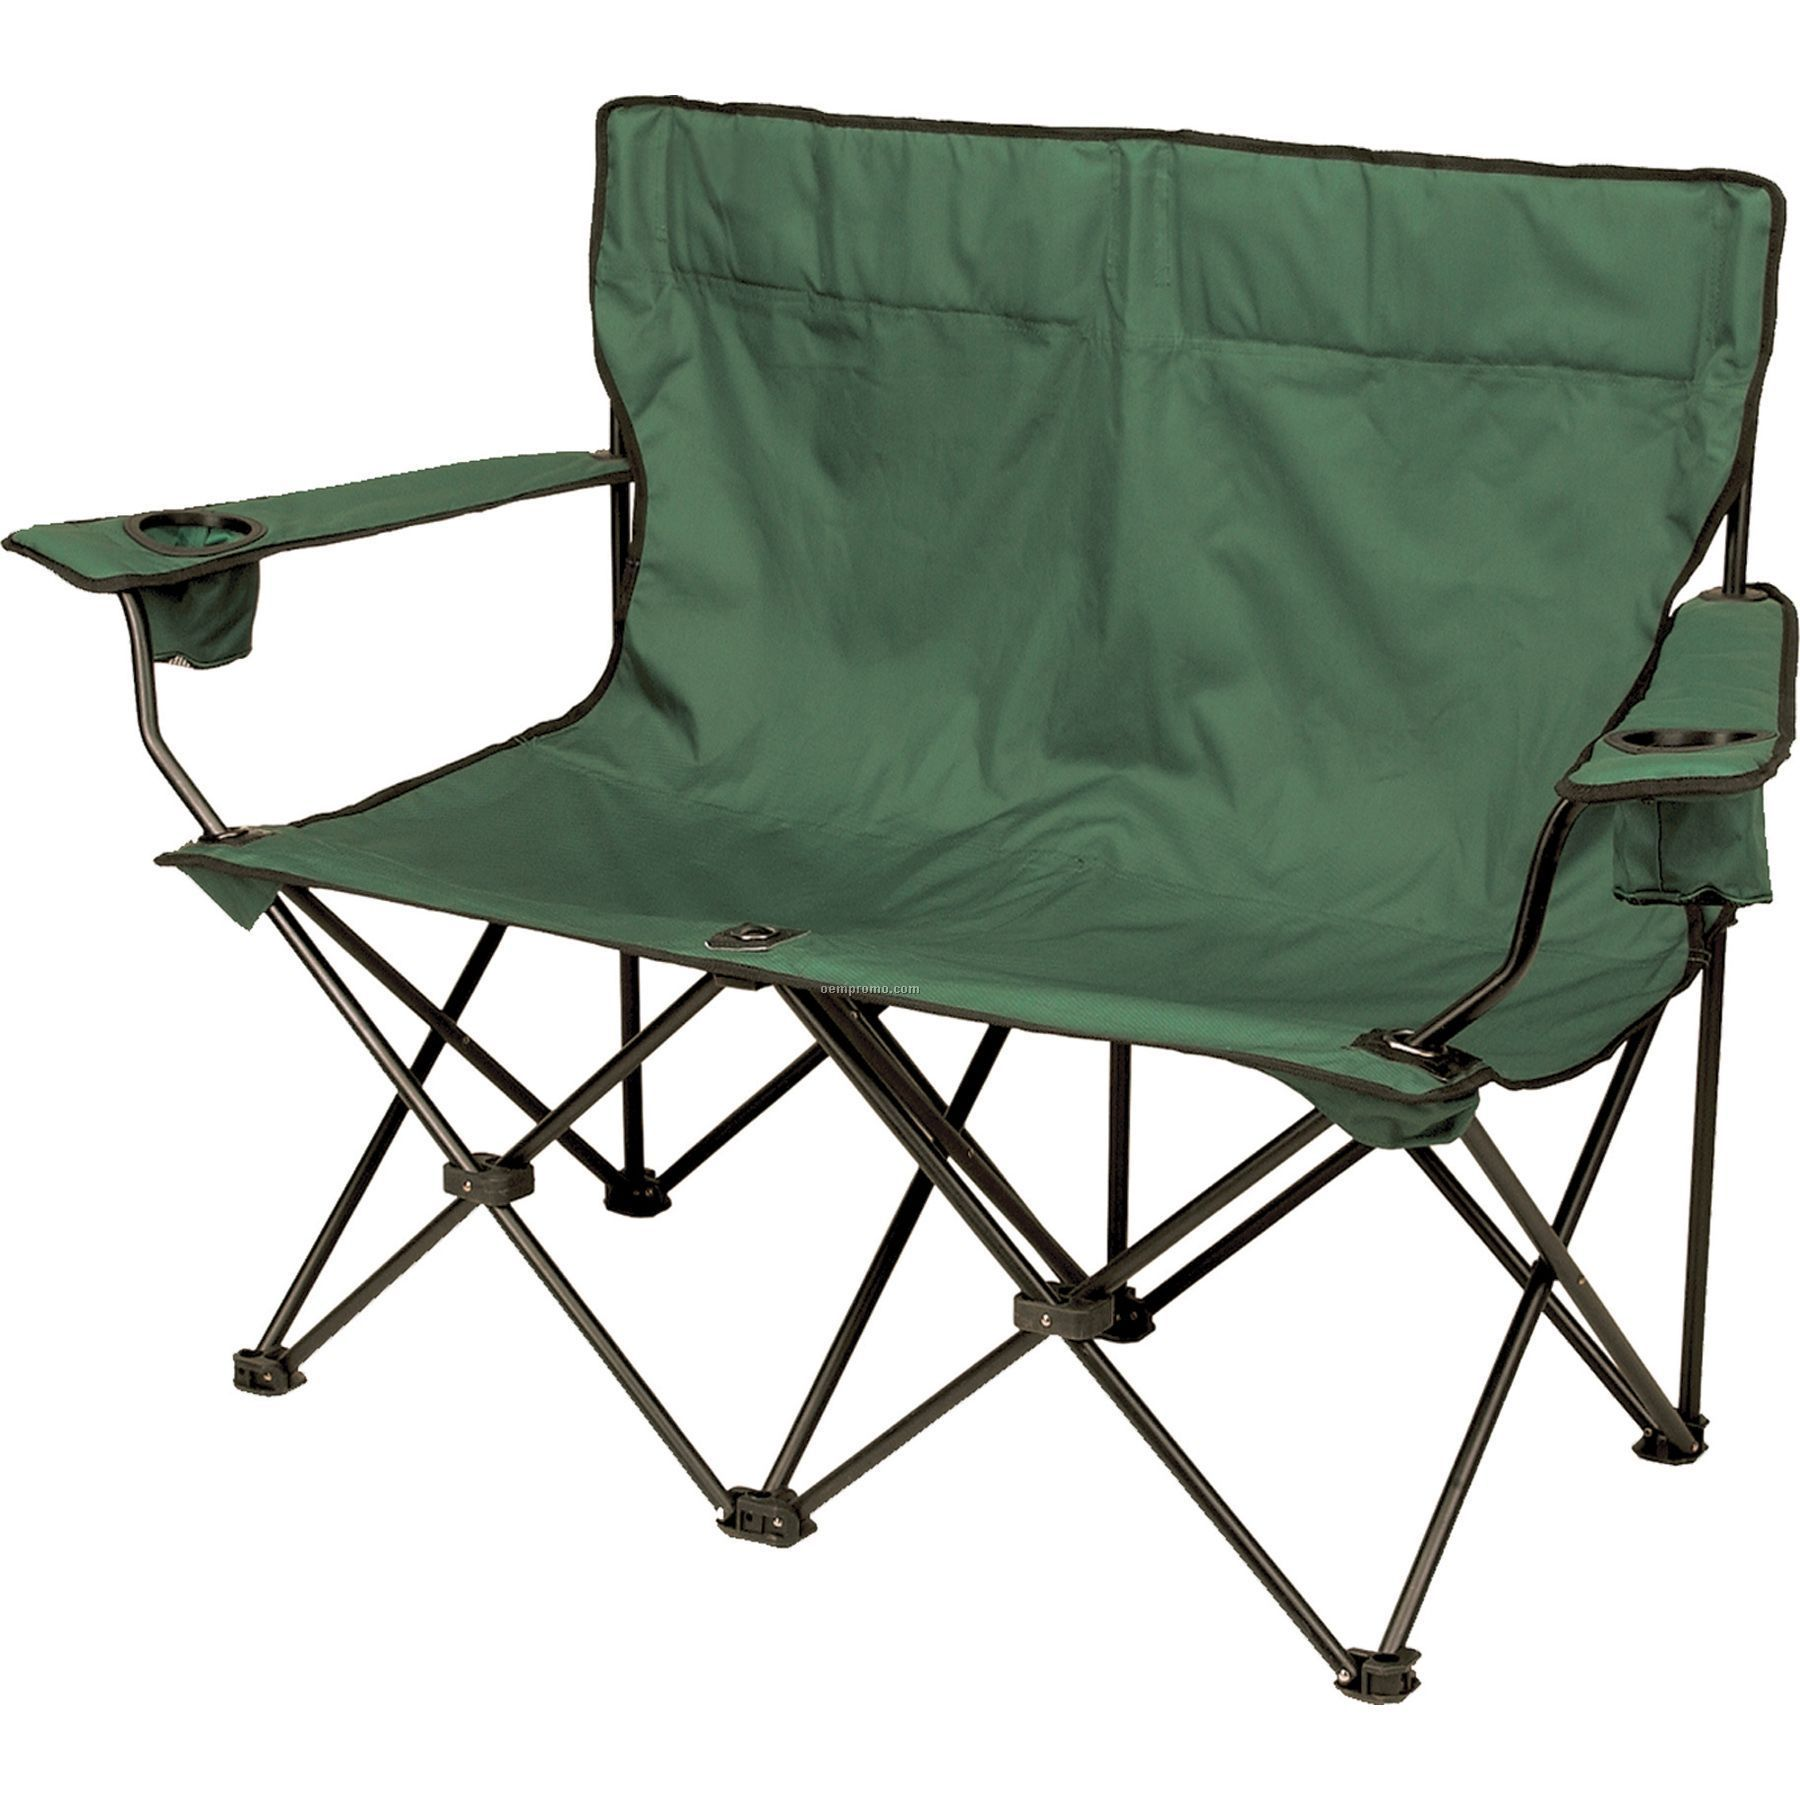 Folding Double Chair With Carry Bag China Wholesale Folding Double Chair With